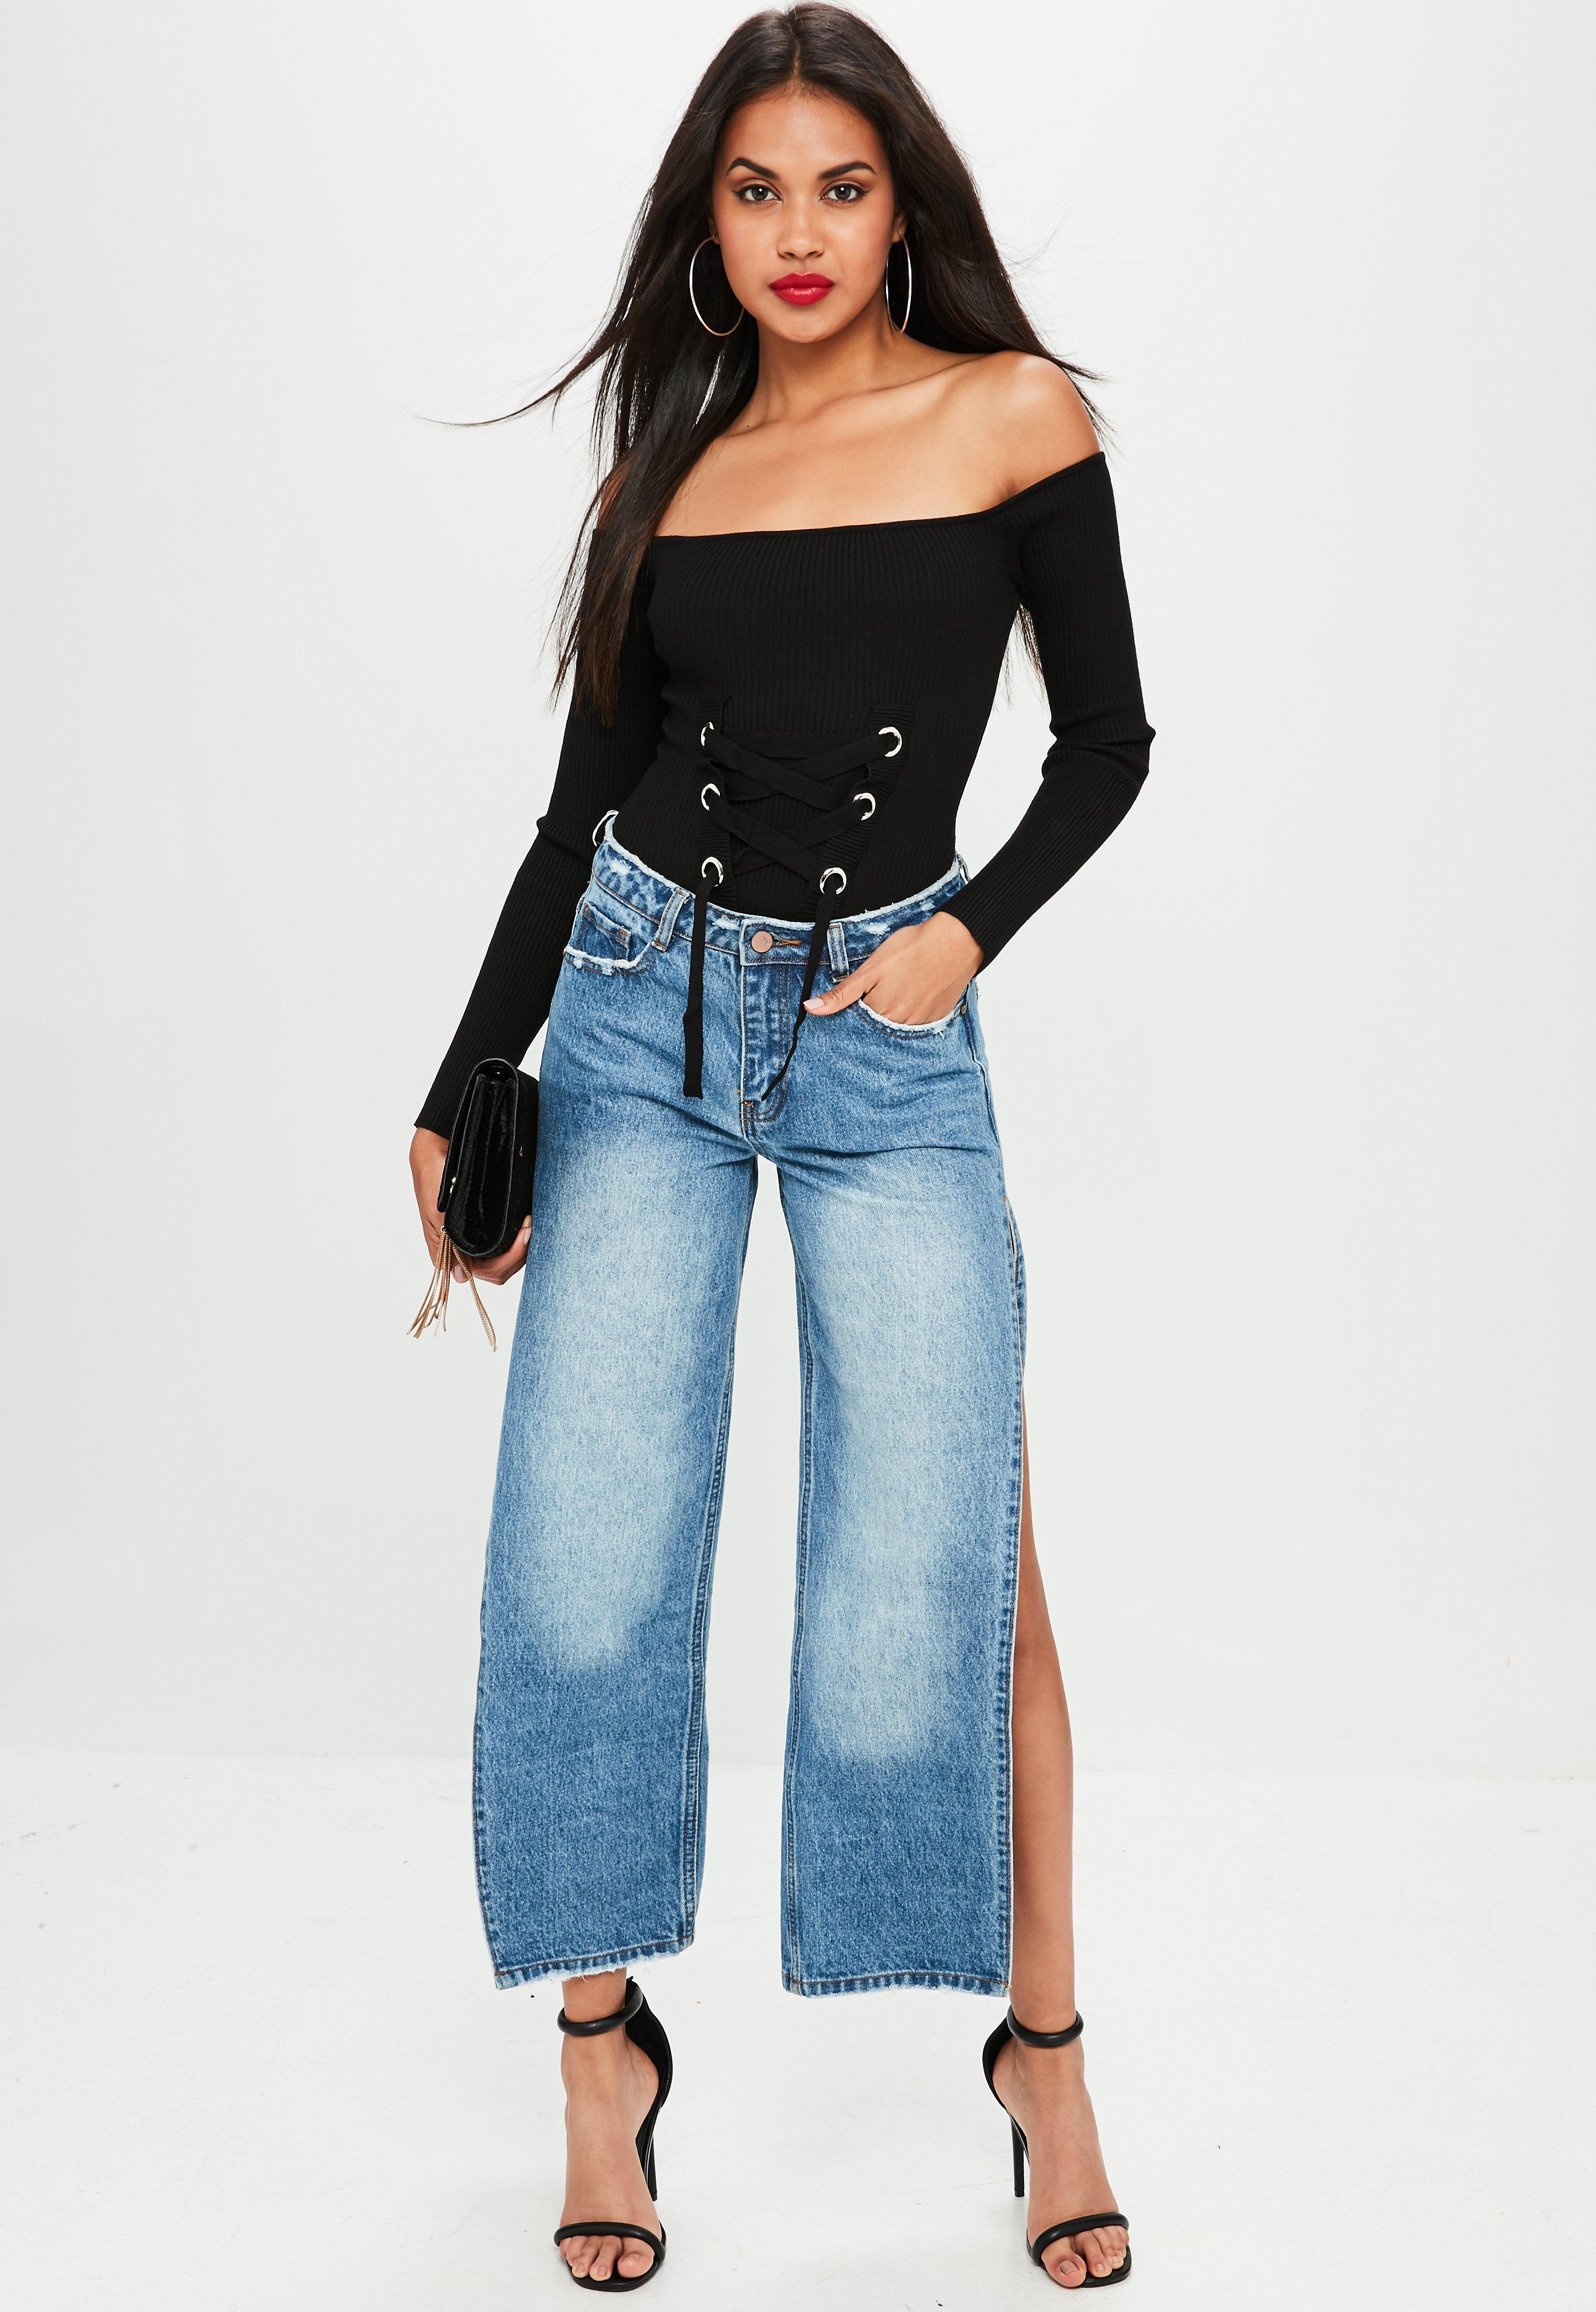 5f6103a233 Lyst - Missguided Black Lace Up Bardot Knitted Bodysuit in Black